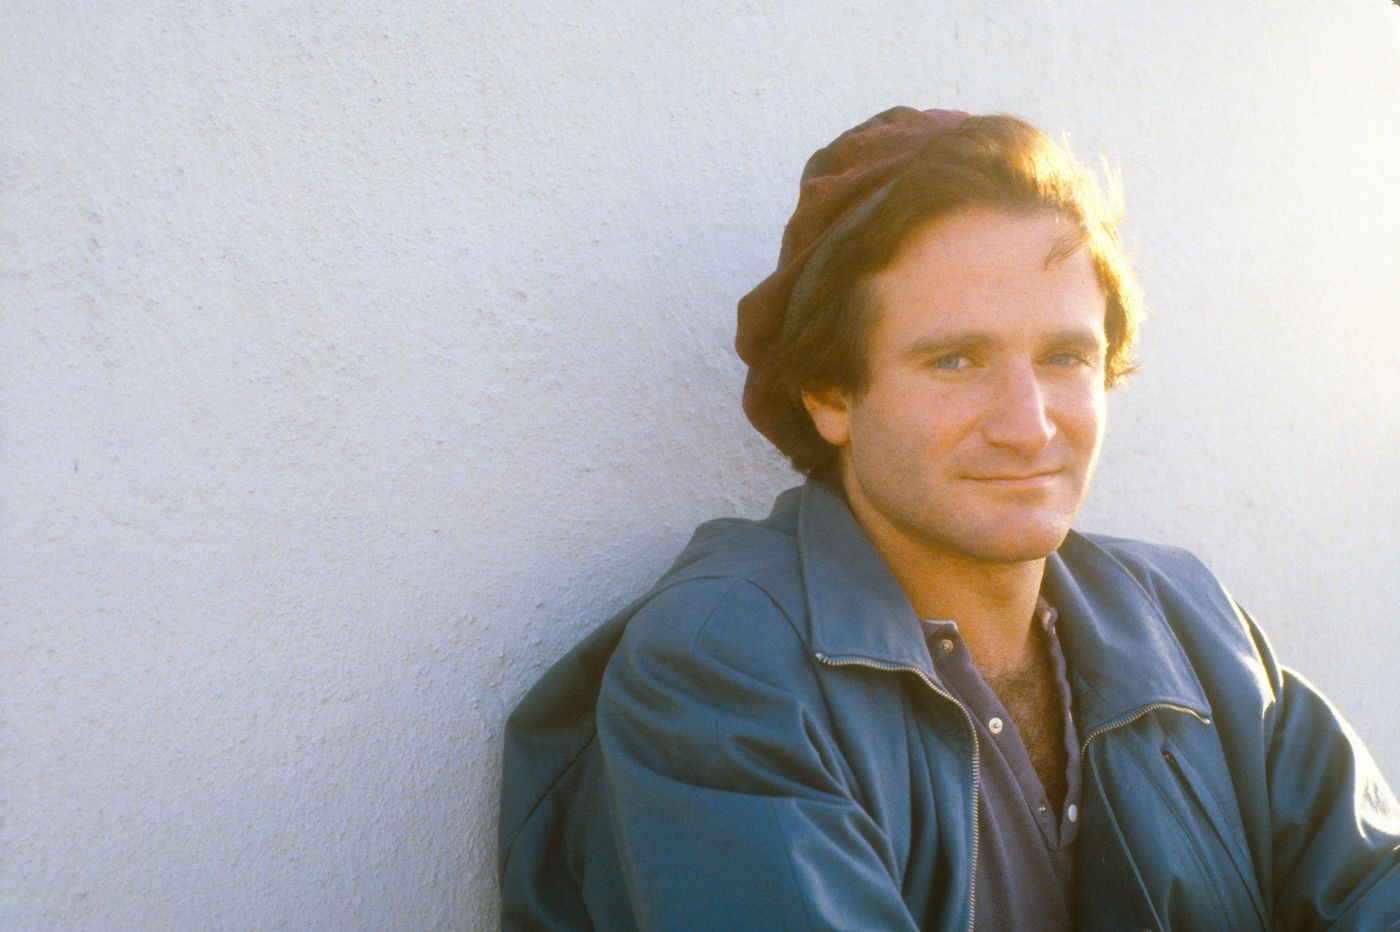 HBO doc celebrates Robin Williams and his 'incredible talent,' says director